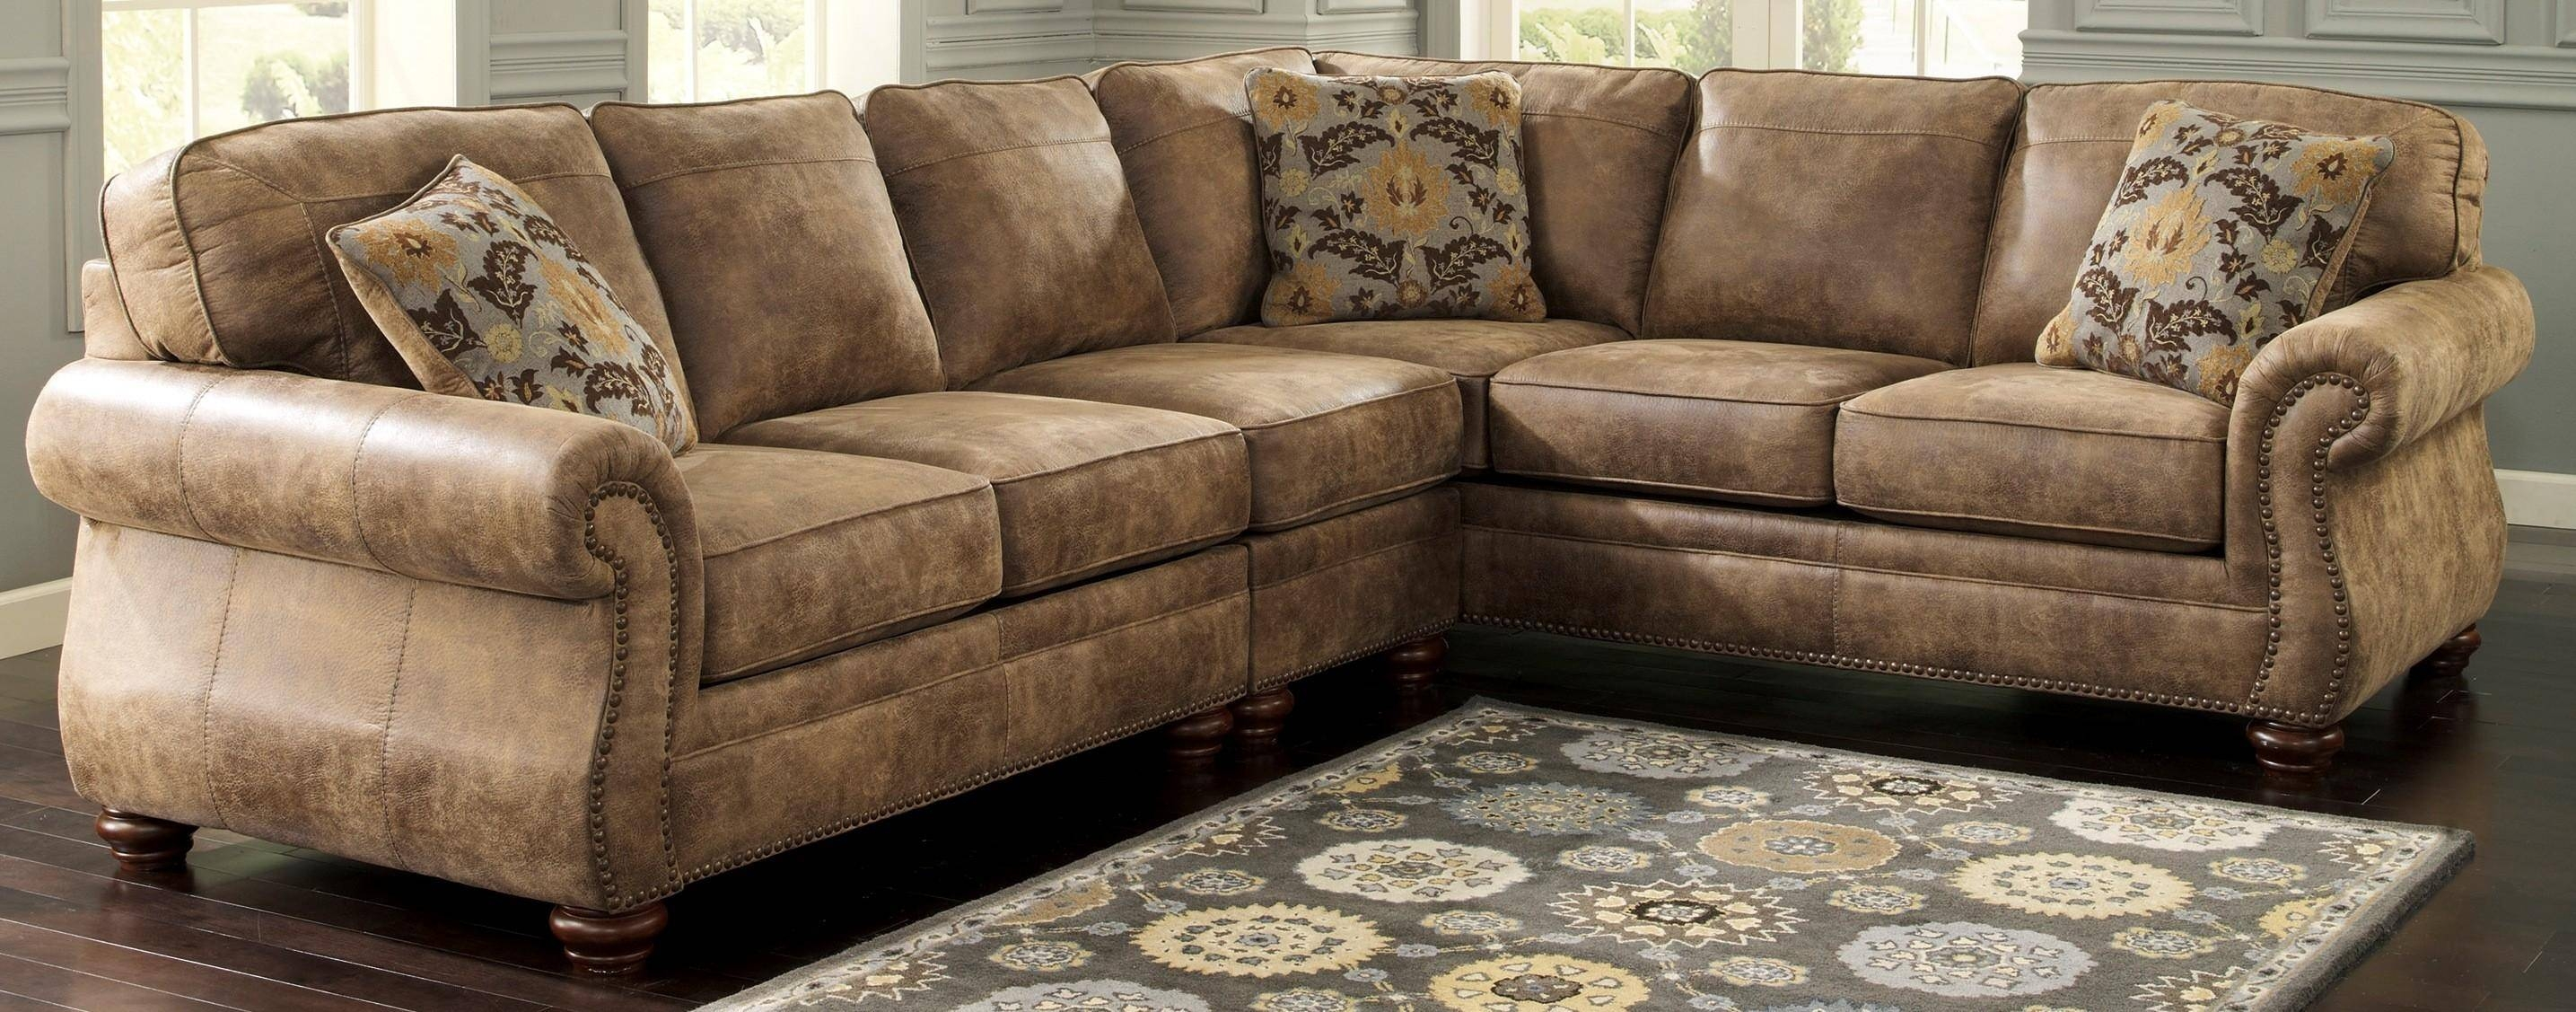 20 Collection Of Ashley Faux Leather Sectional Sofas | Sofa Ideas inside Ashley Faux Leather Sectional Sofas (Image 1 of 15)